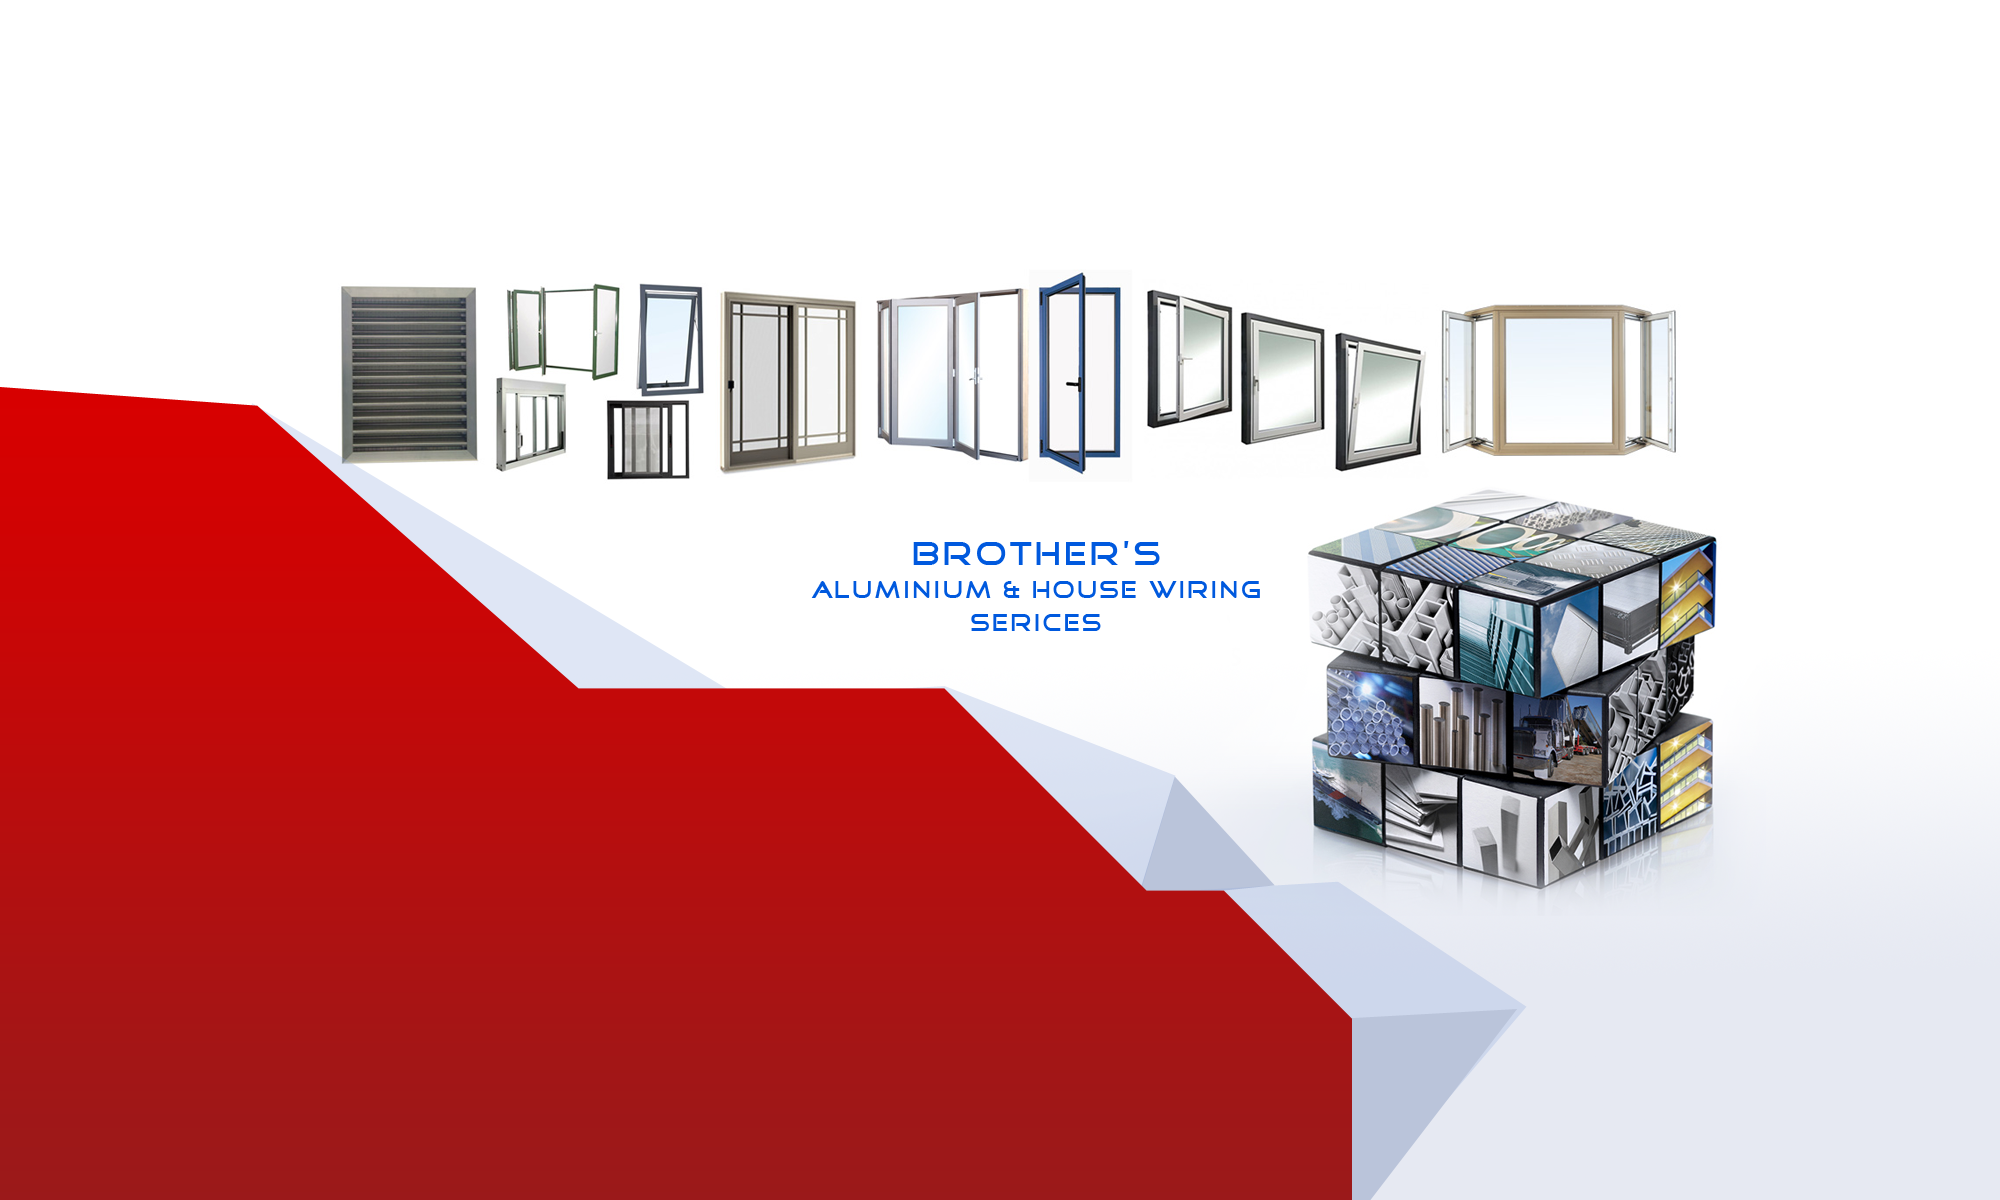 Brothers Aluminium & House Wiring Services